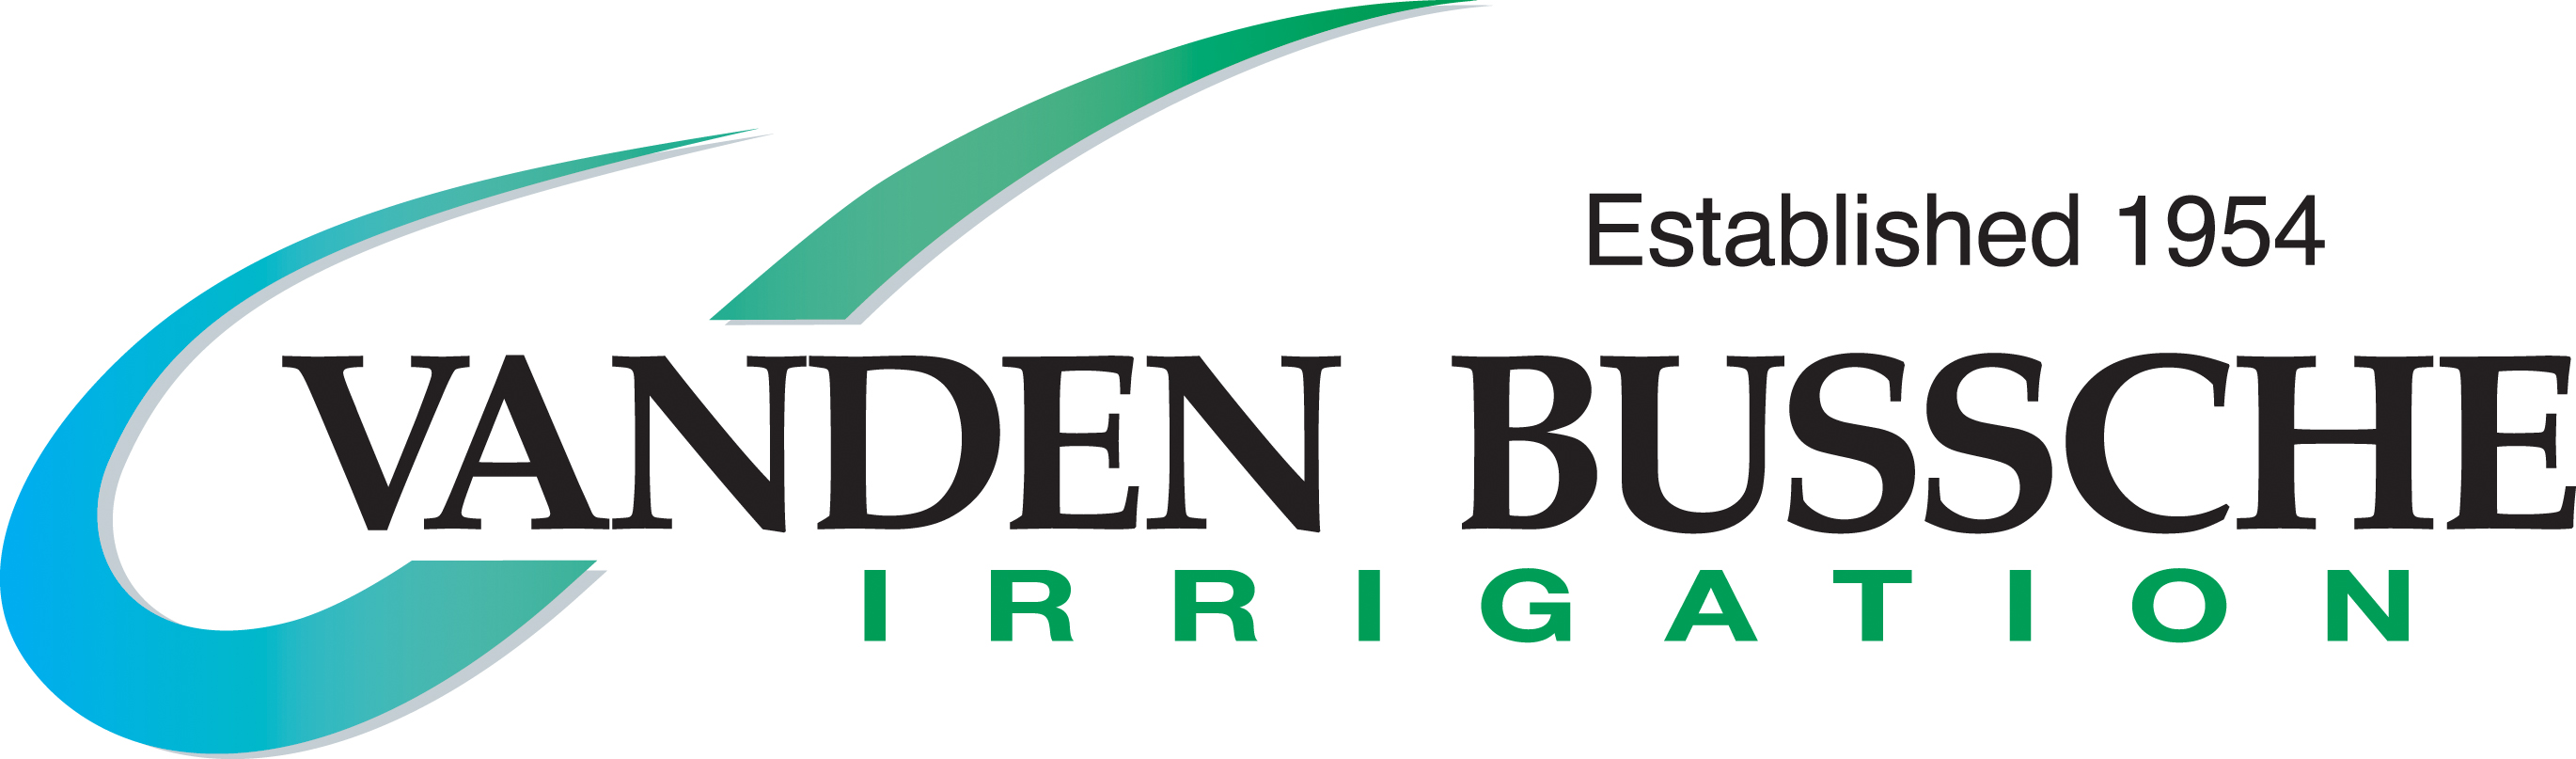 VANDEN BUSSCHE IRRIGATION EQUIPMENT